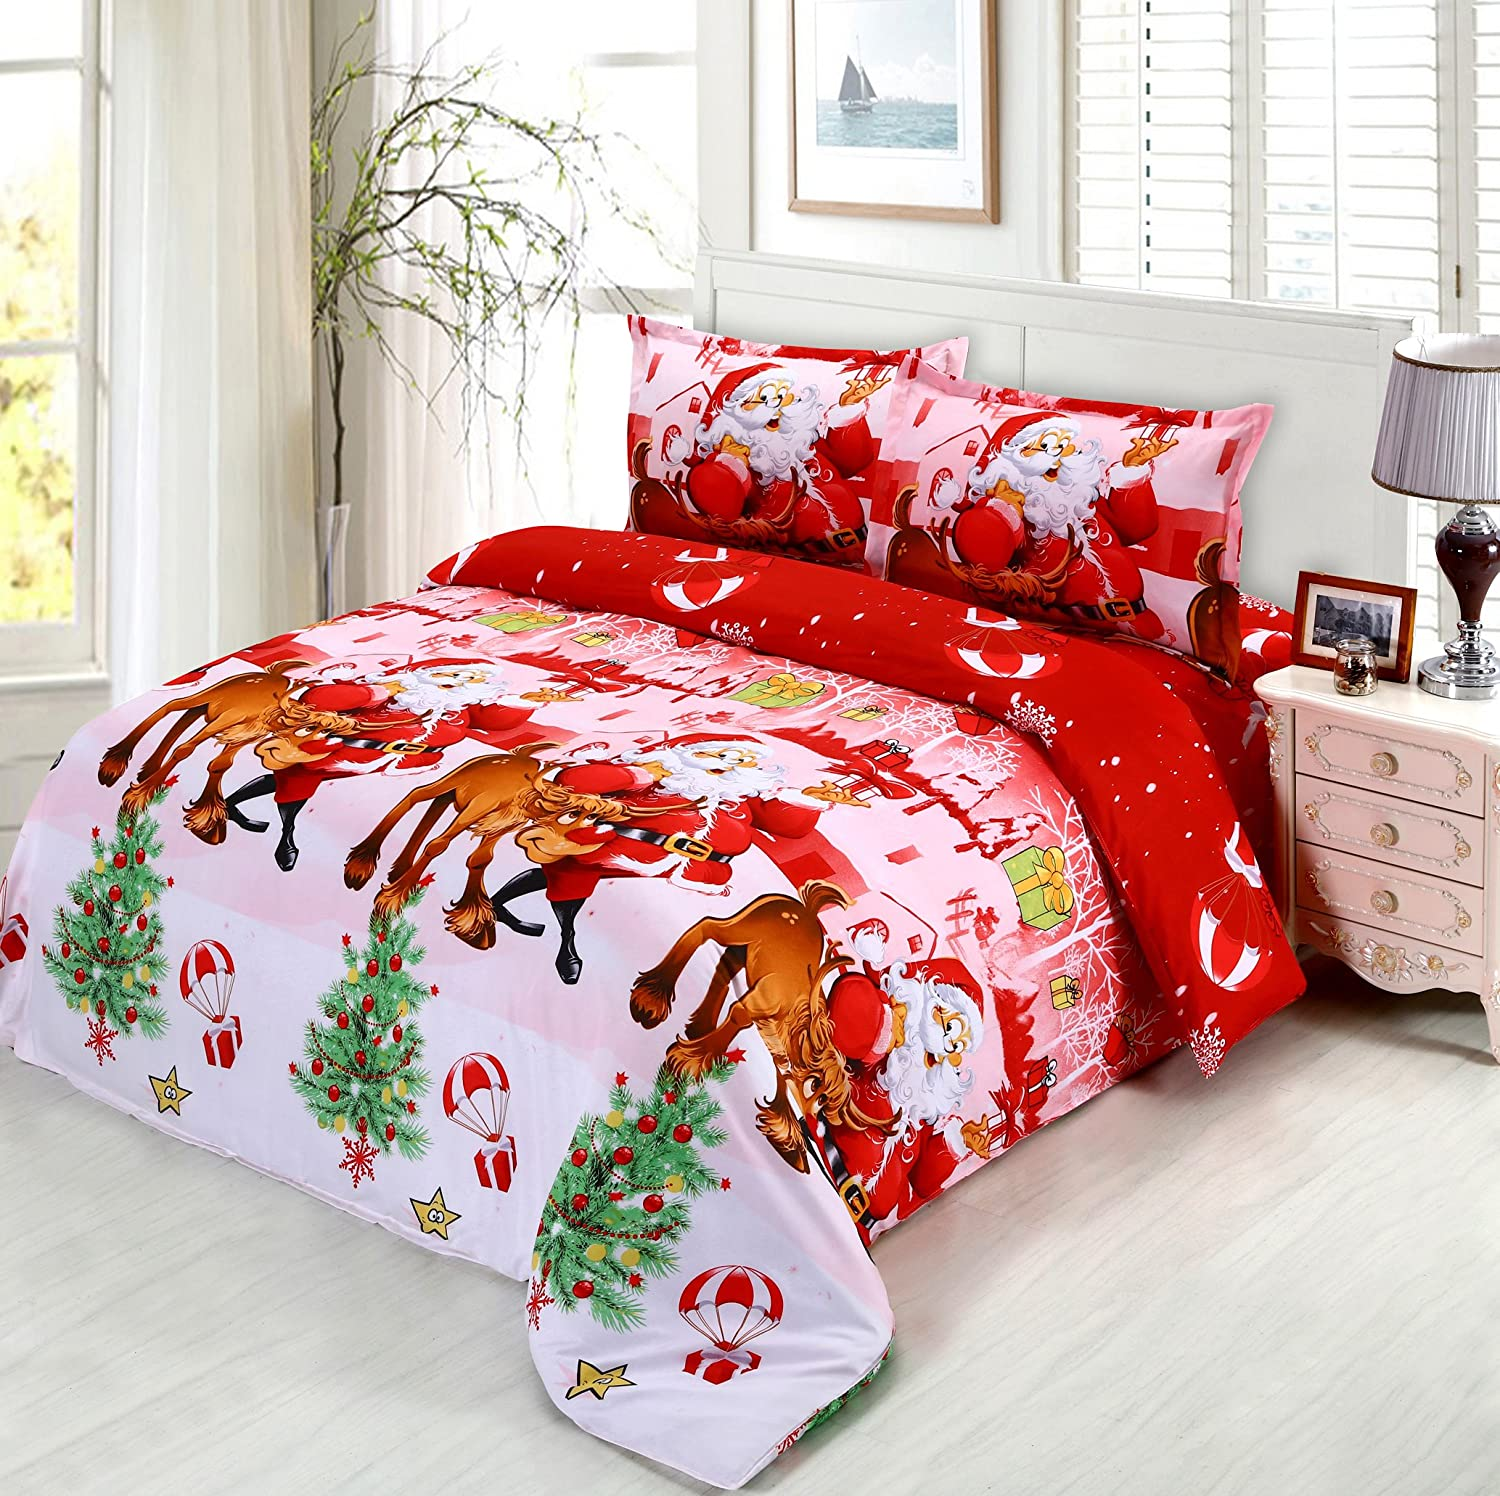 christmas bedding sets ease bedding with style. Black Bedroom Furniture Sets. Home Design Ideas